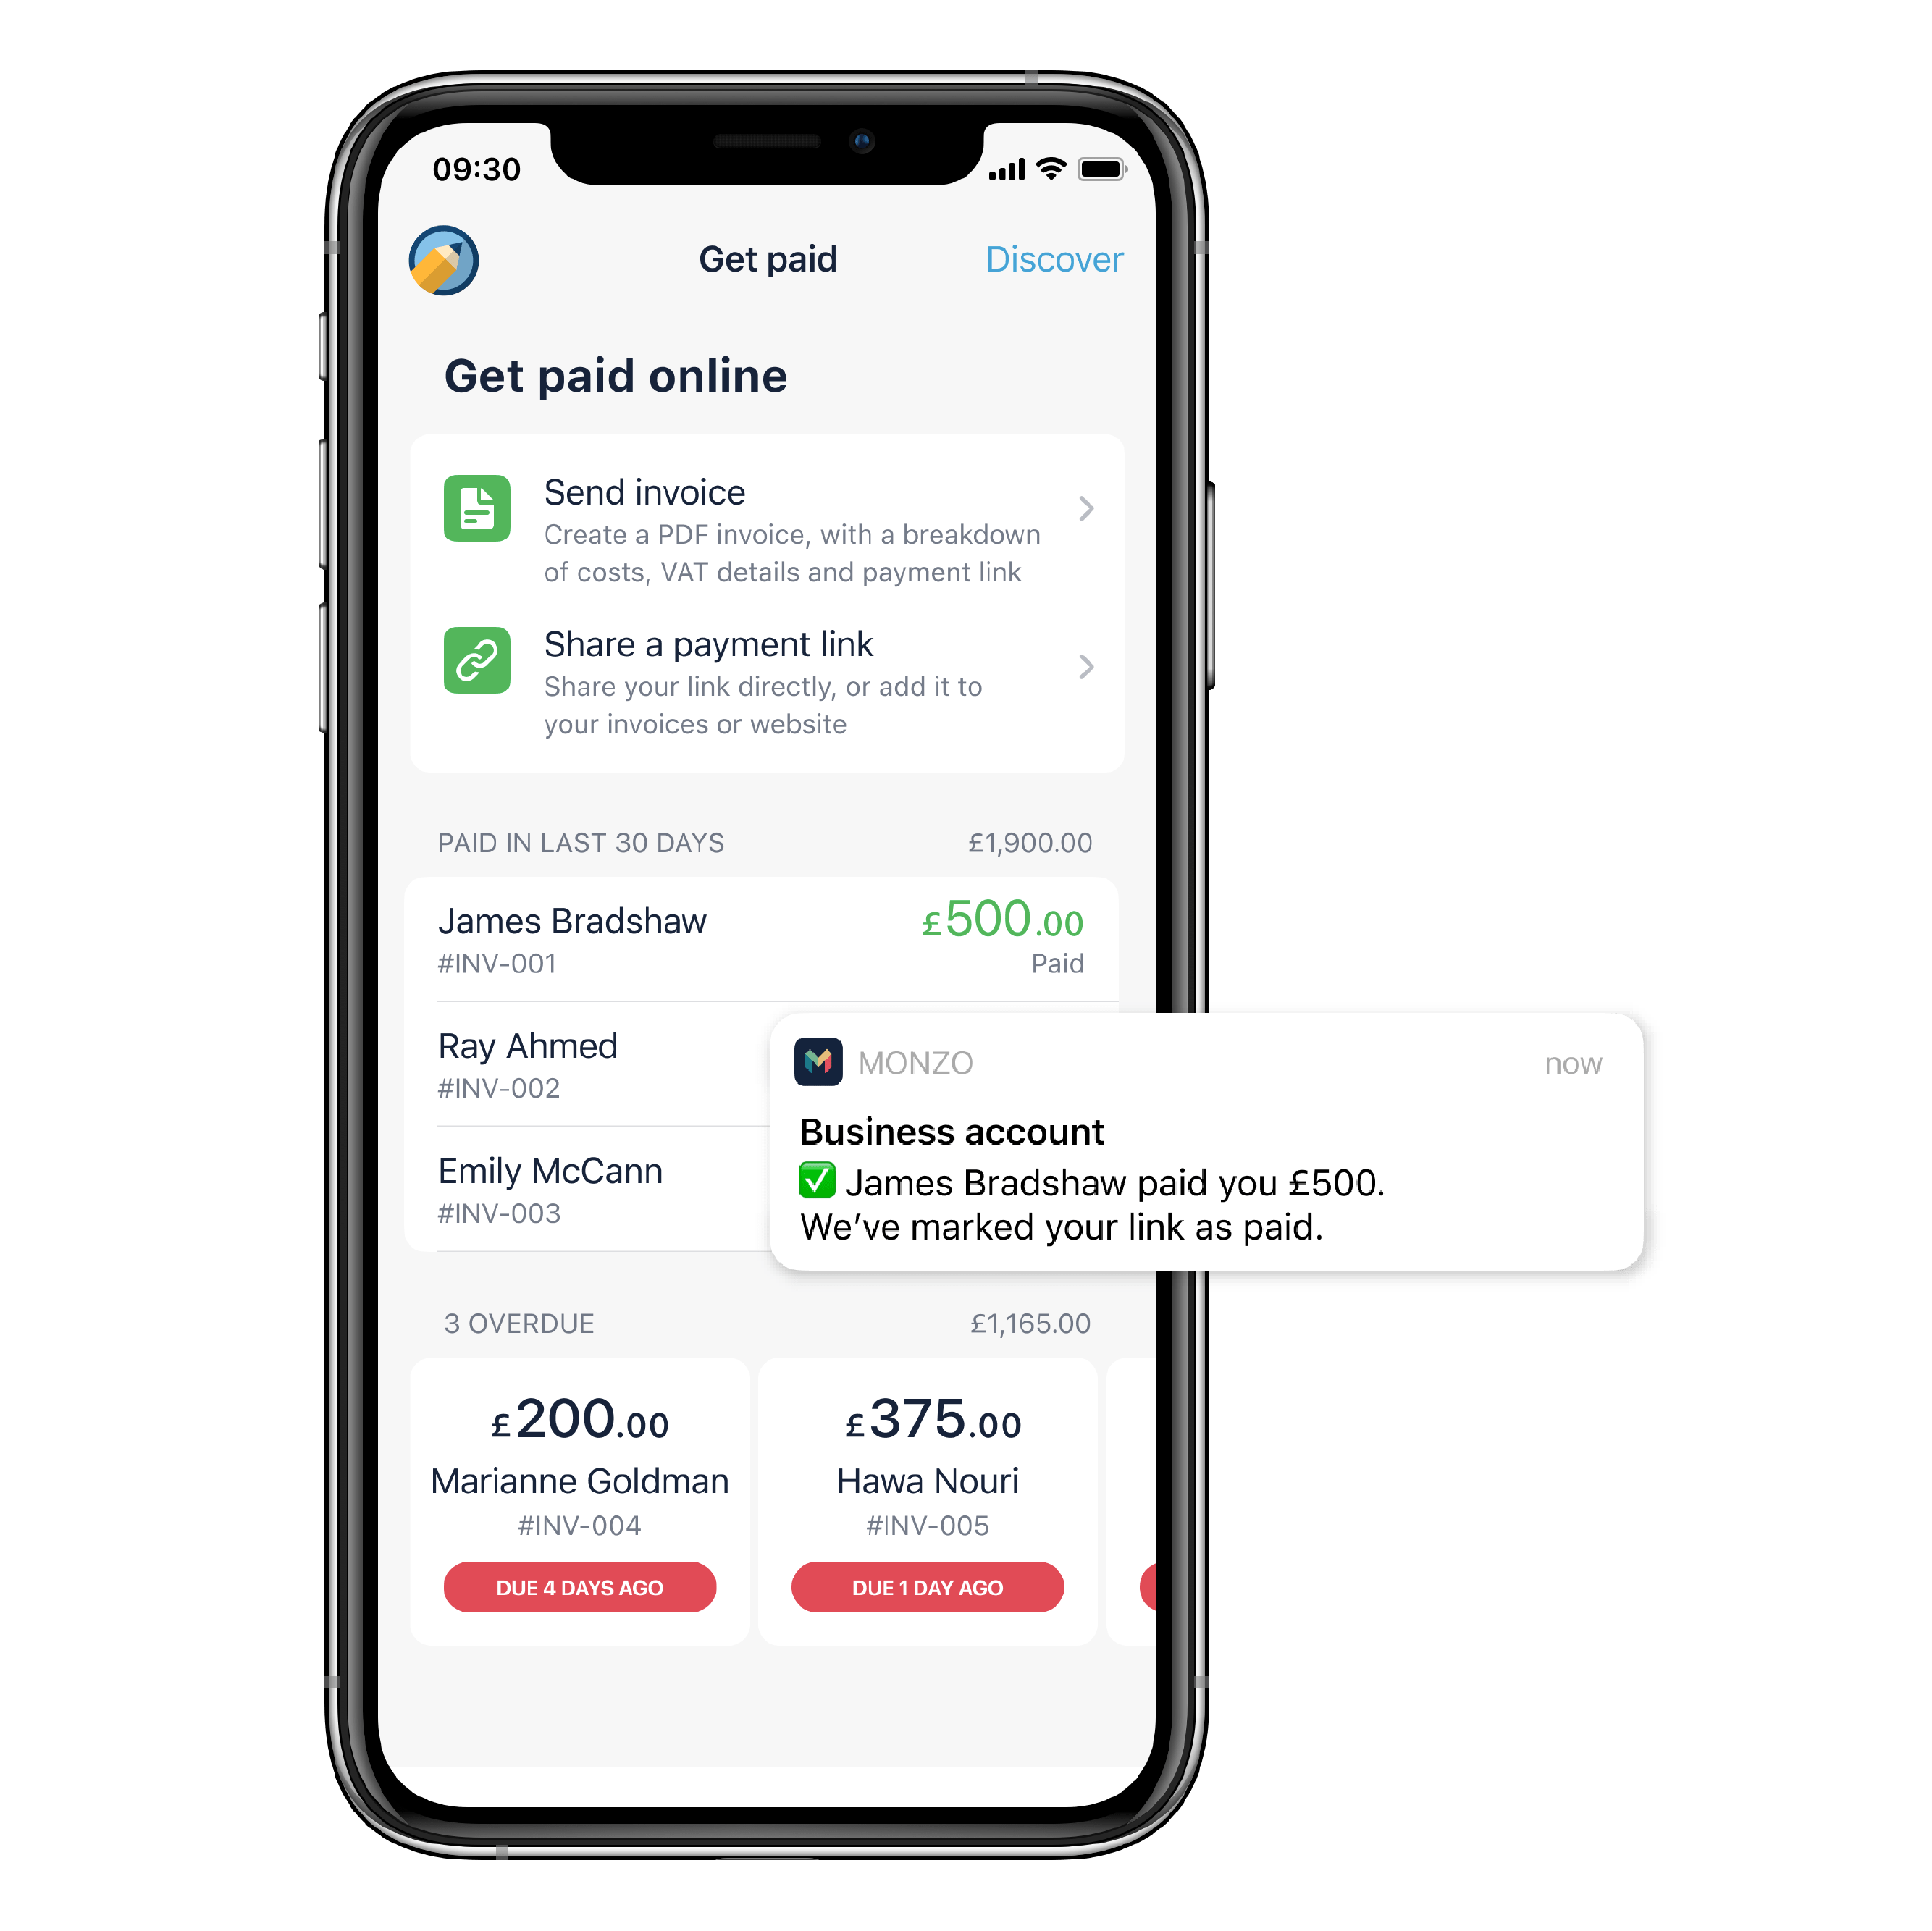 """A screenshot of the Monzo app on iPhone with the heading """"Get paid online"""". First button: """"Send invoice - create a PDF invoice, with a breakdown of costs, VAT details and payment link"""". Second button: """"Share a payment link - share a link directly, or add it to your invoices or website"""". There is a list of paid payment requests with the heading """"Paid in last 30 days"""" and a total of £1900. There is a list of overdue payment requests with the heading """"3 overdue"""" and a total of £1,165. There is also a picture of a mobile notification with the Monzo logo that says """"Business account - James Bradshaw paid you £500. We've marked your link as paid."""""""